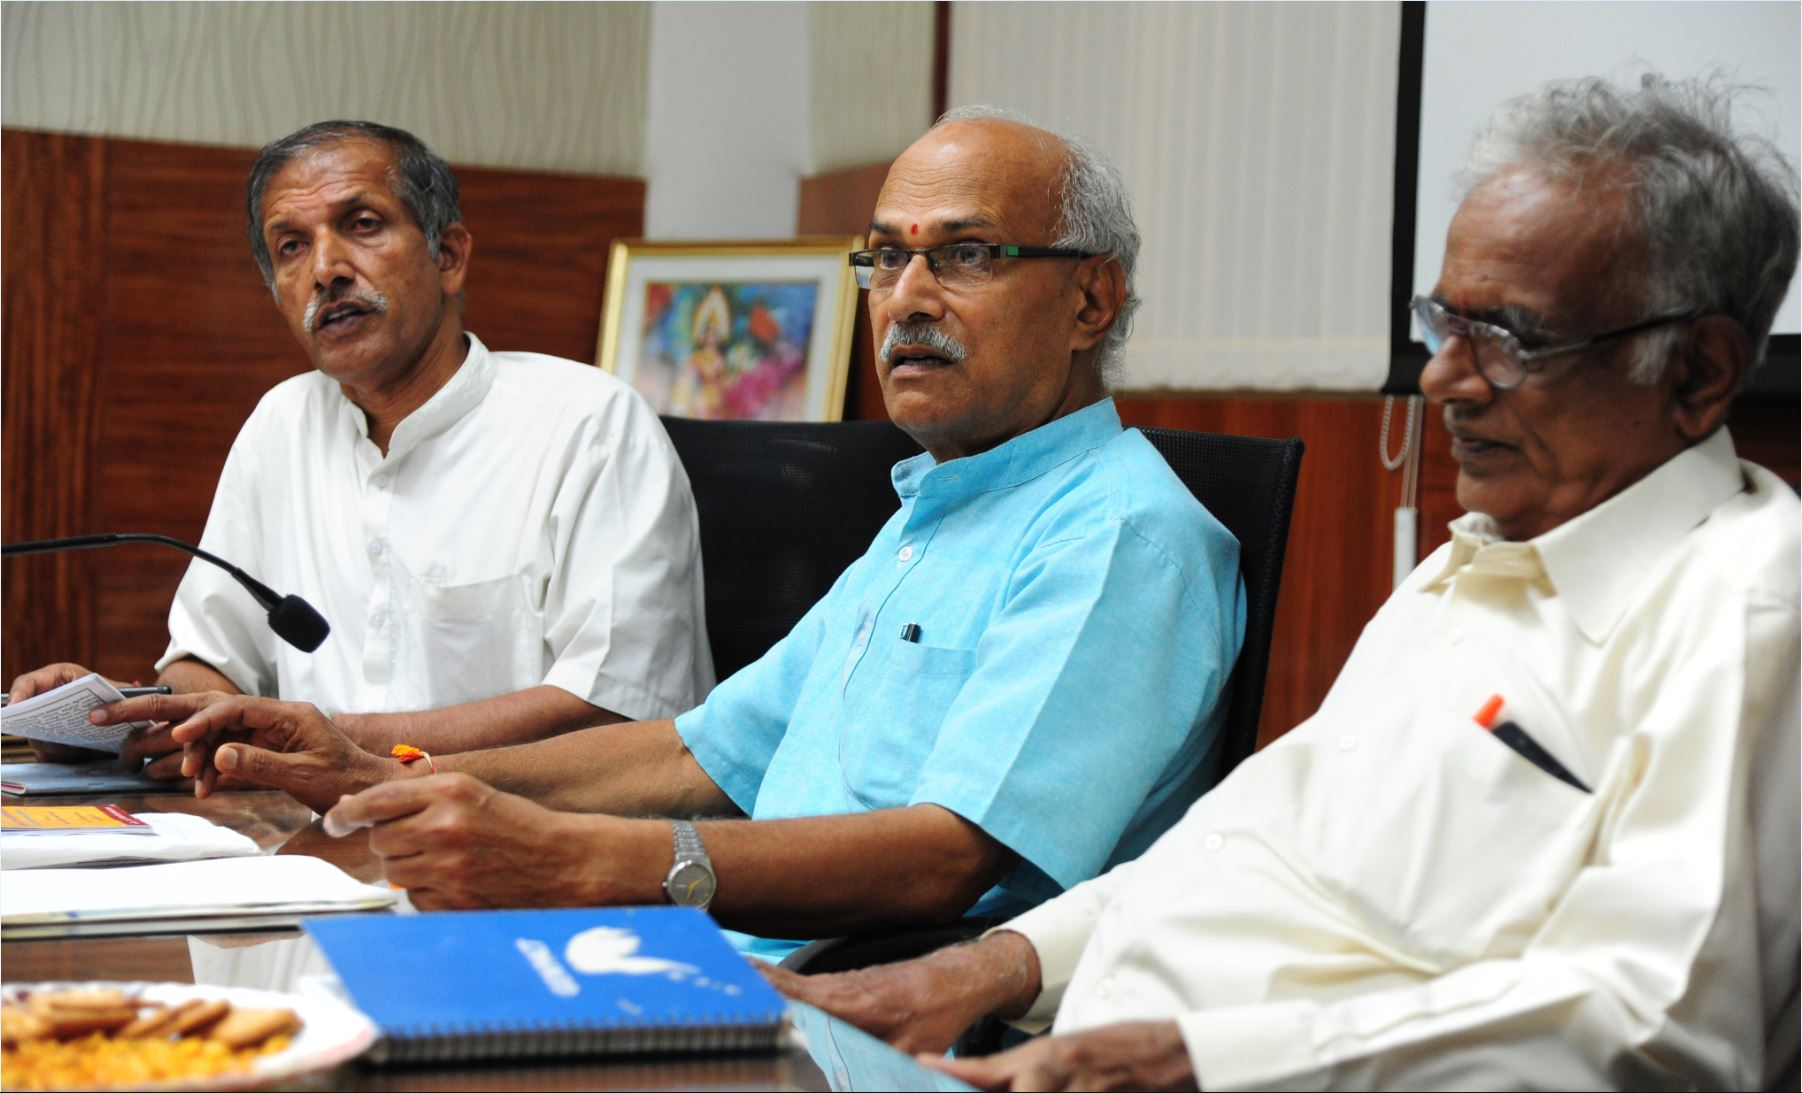 Vanavasi Kalyana Karnataka held Press Conference recently related to their activities in next couple of months.